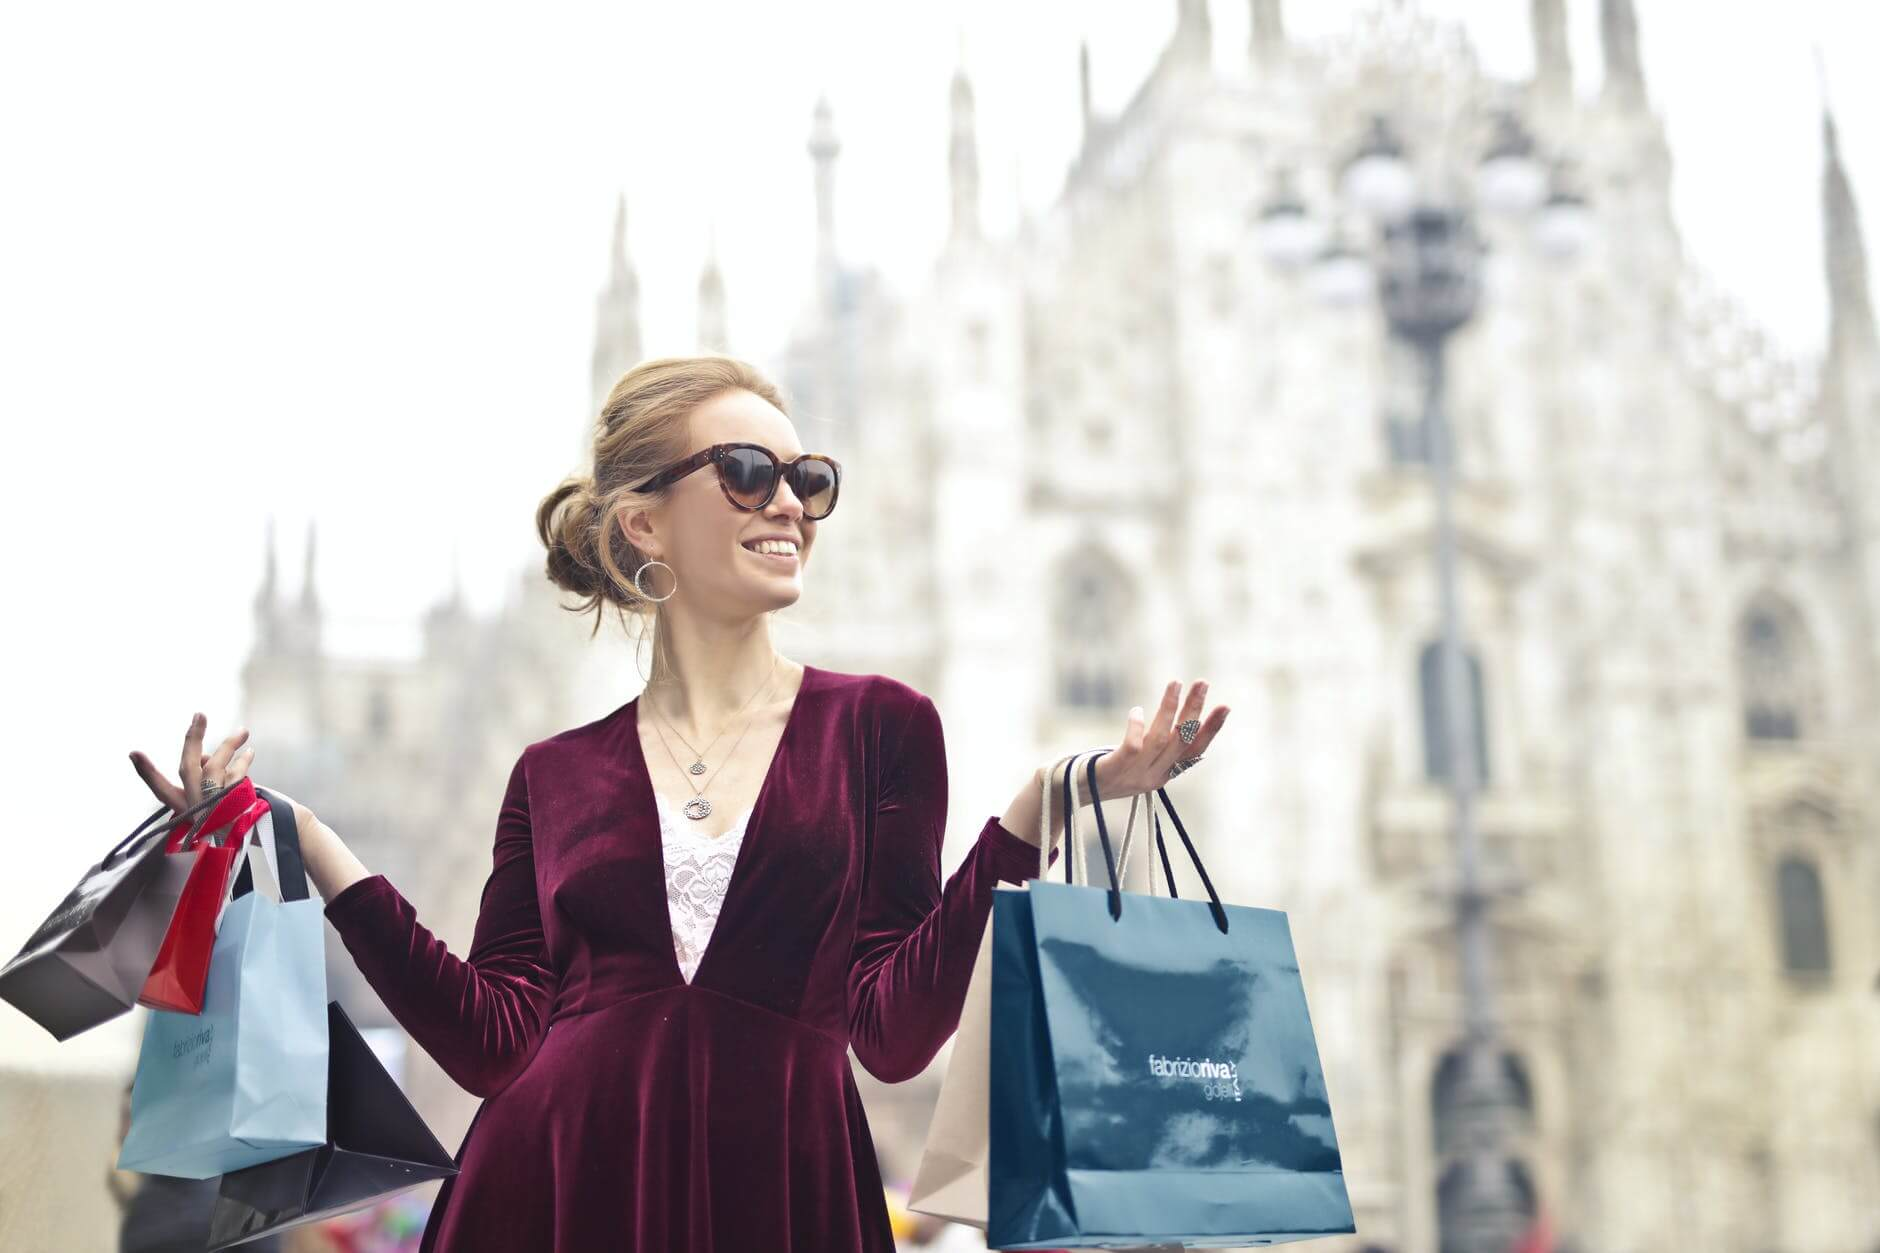 A women has bought numerous bags of luxury goods